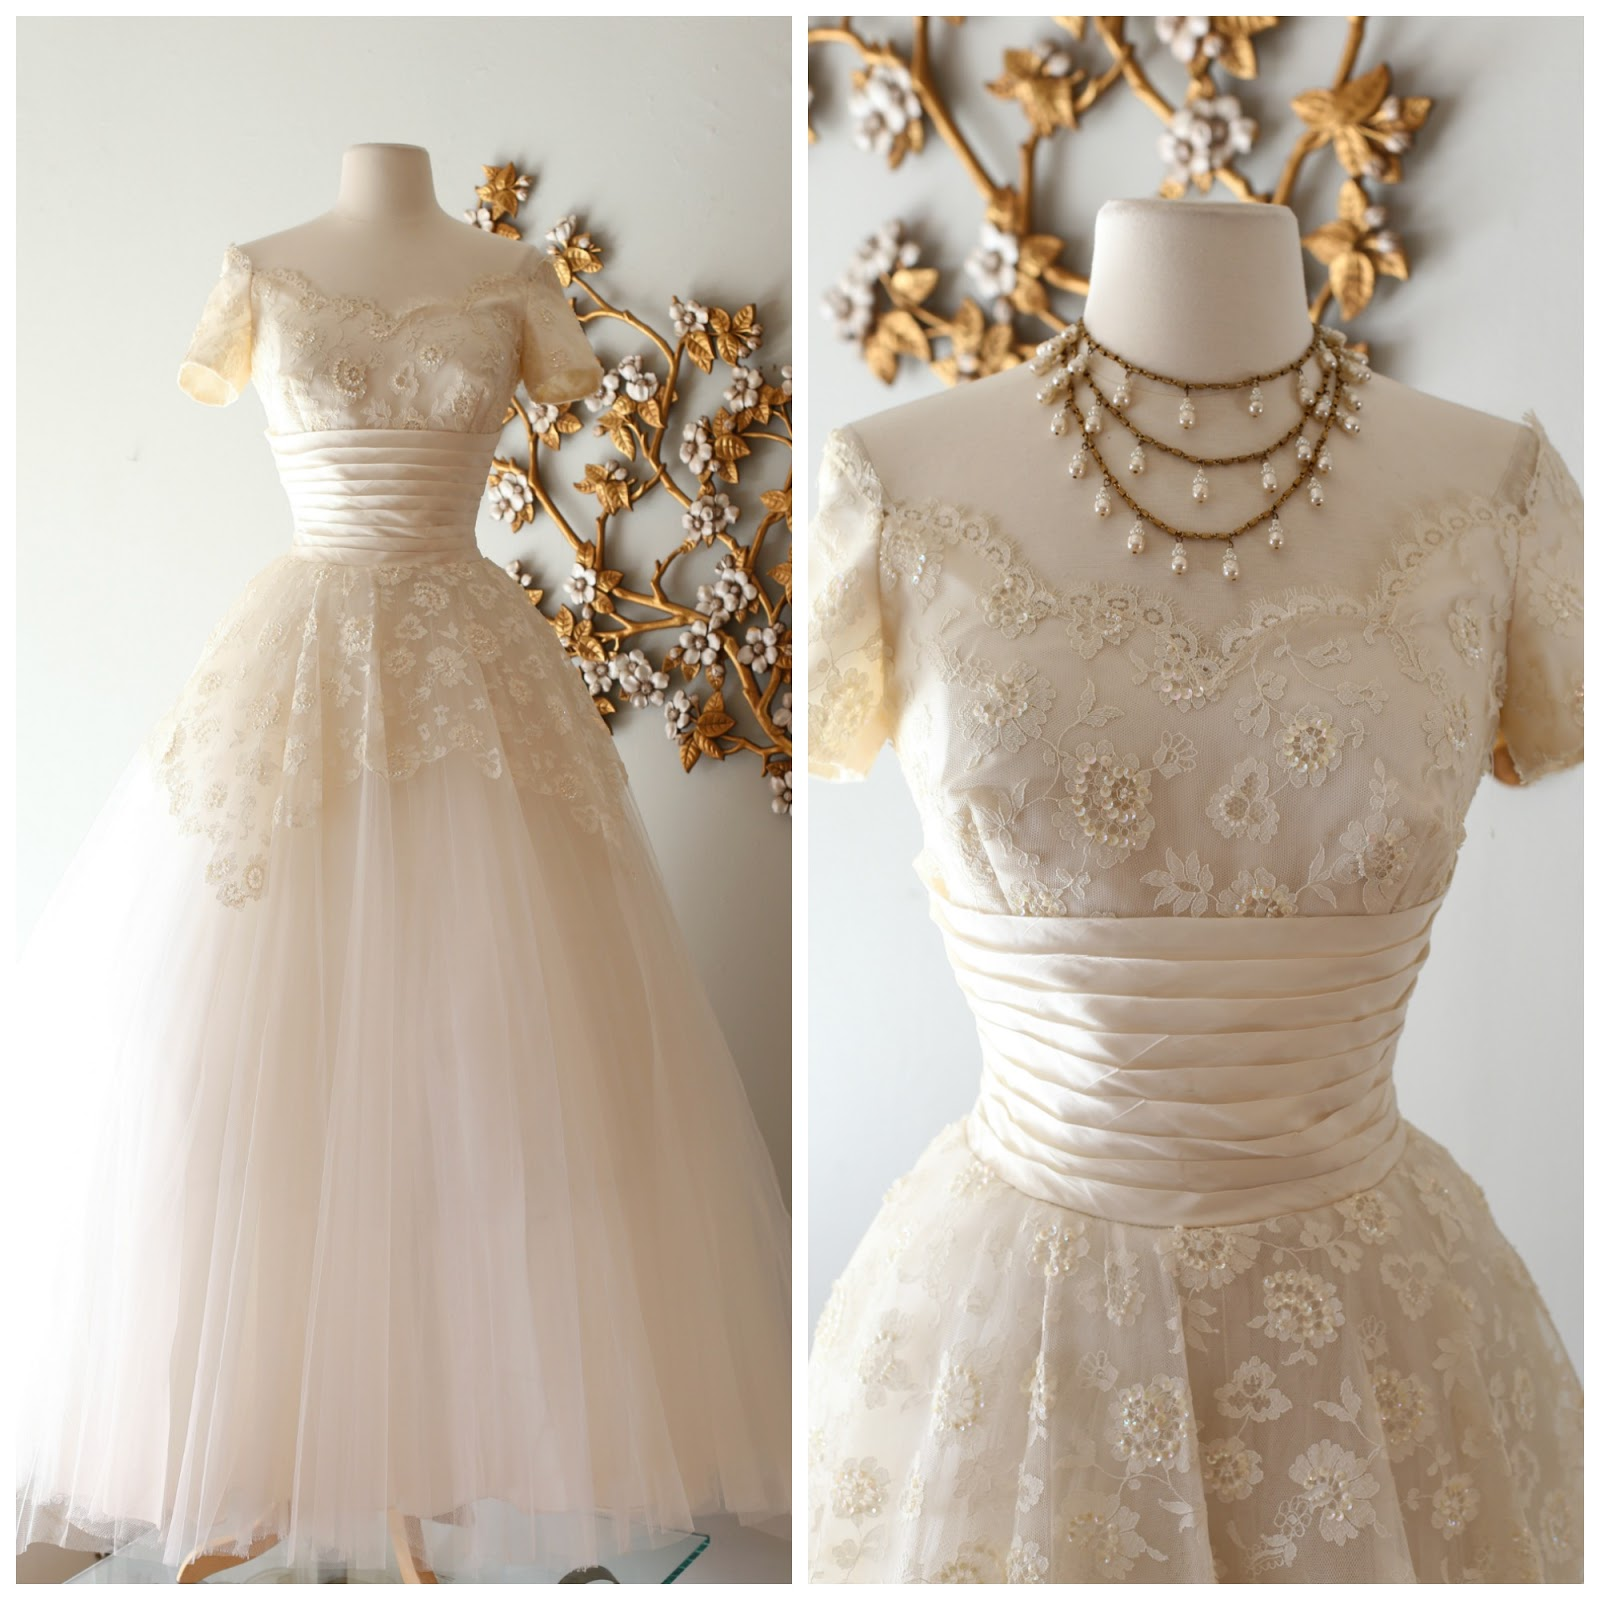 hills sequined lace and tulle wedding gown available in our etsy shop